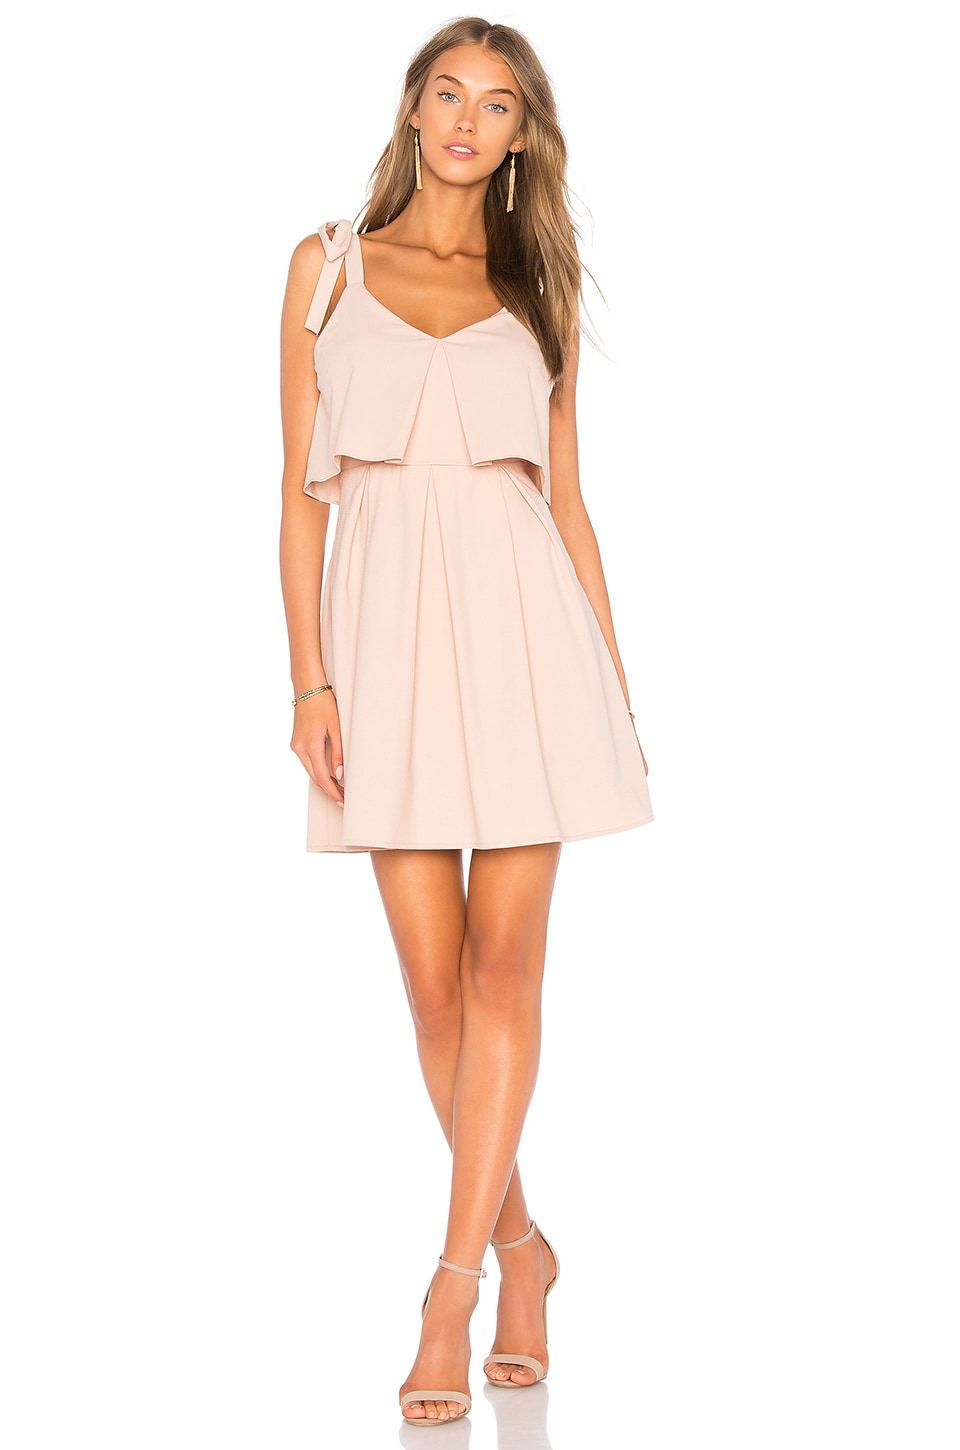 J.O.A. Ribbon Tie Flare Dress in Nude